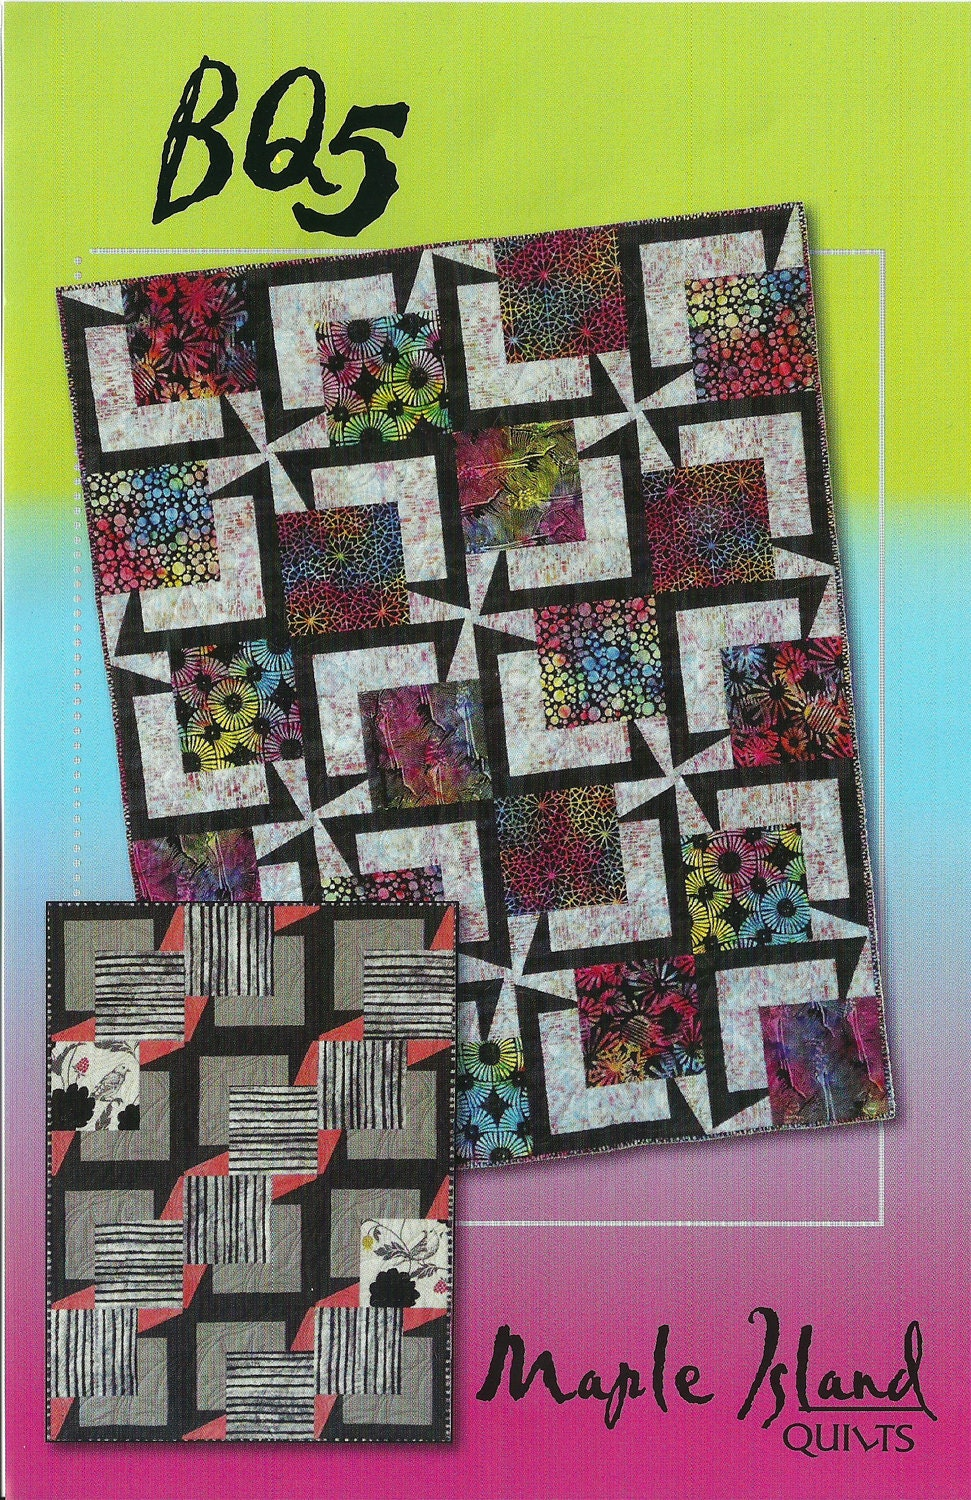 BQ 5 Quilt Pattern Maple Island Quilts DIY Quilting Sewing 2 Blocks 6 Sizes